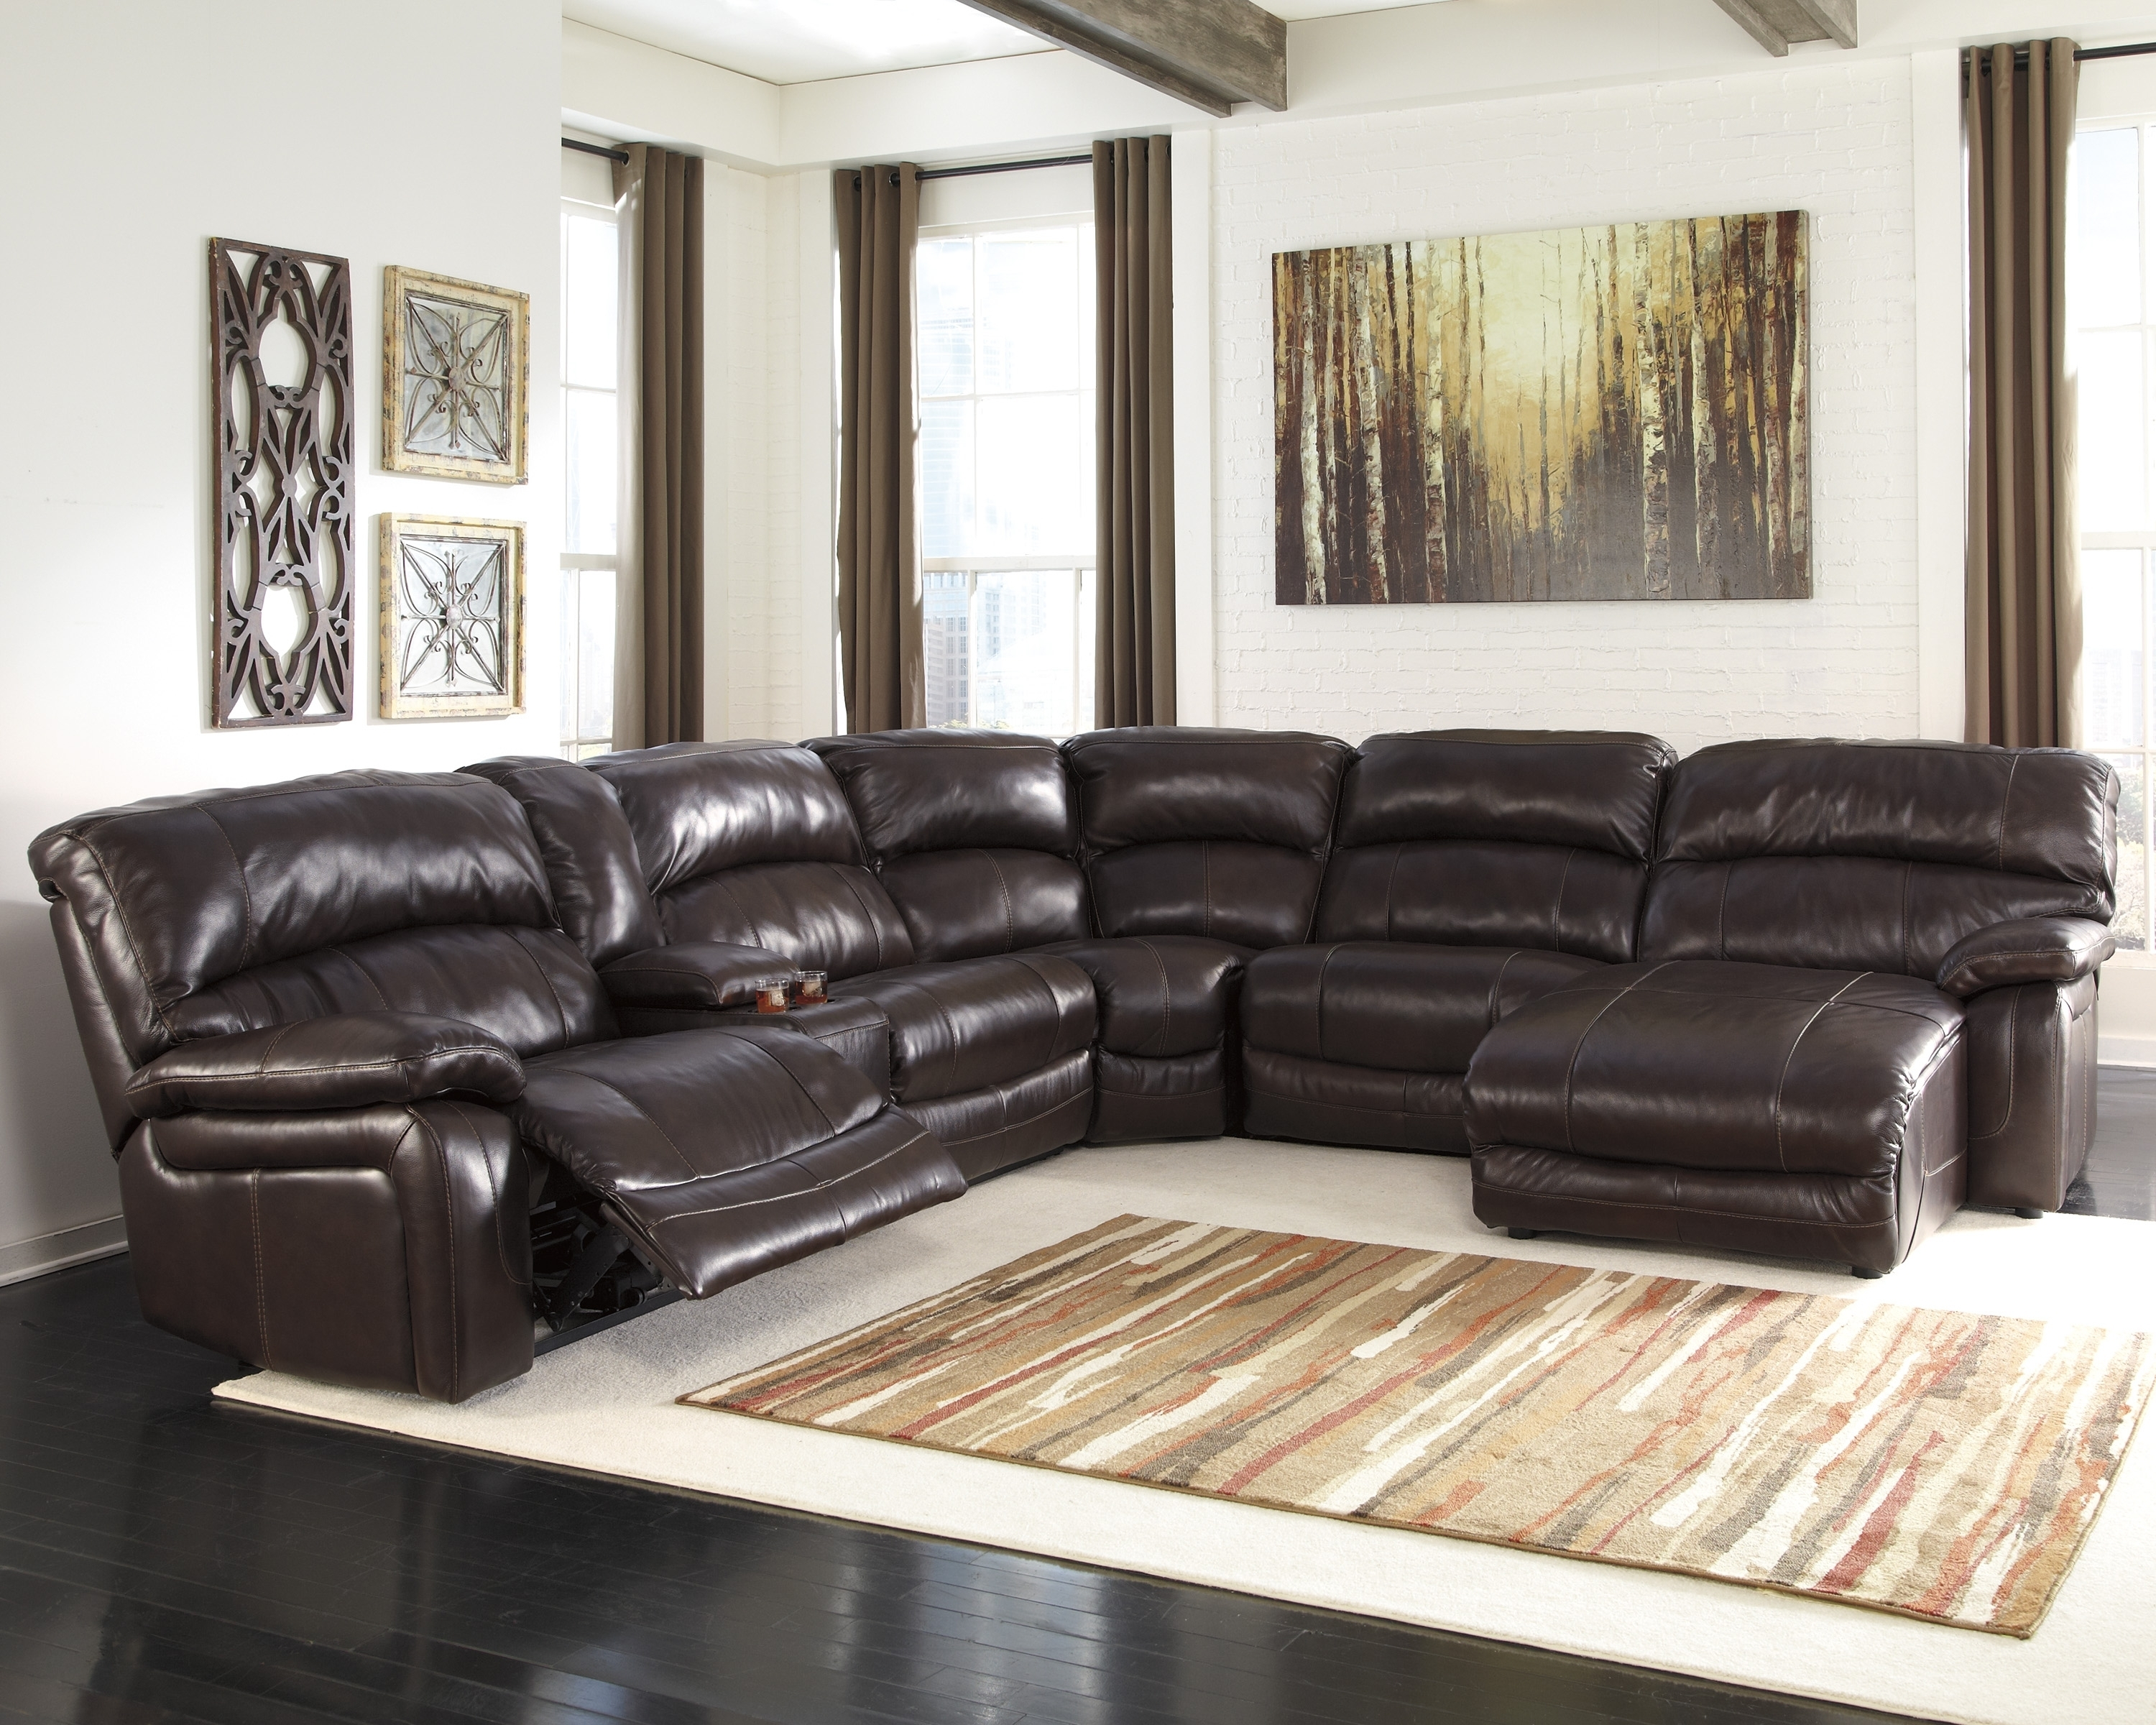 Gallery Craftsman Sectional Sofa – Mediasupload With Regard To Craftsman Sectional Sofas (Image 8 of 10)